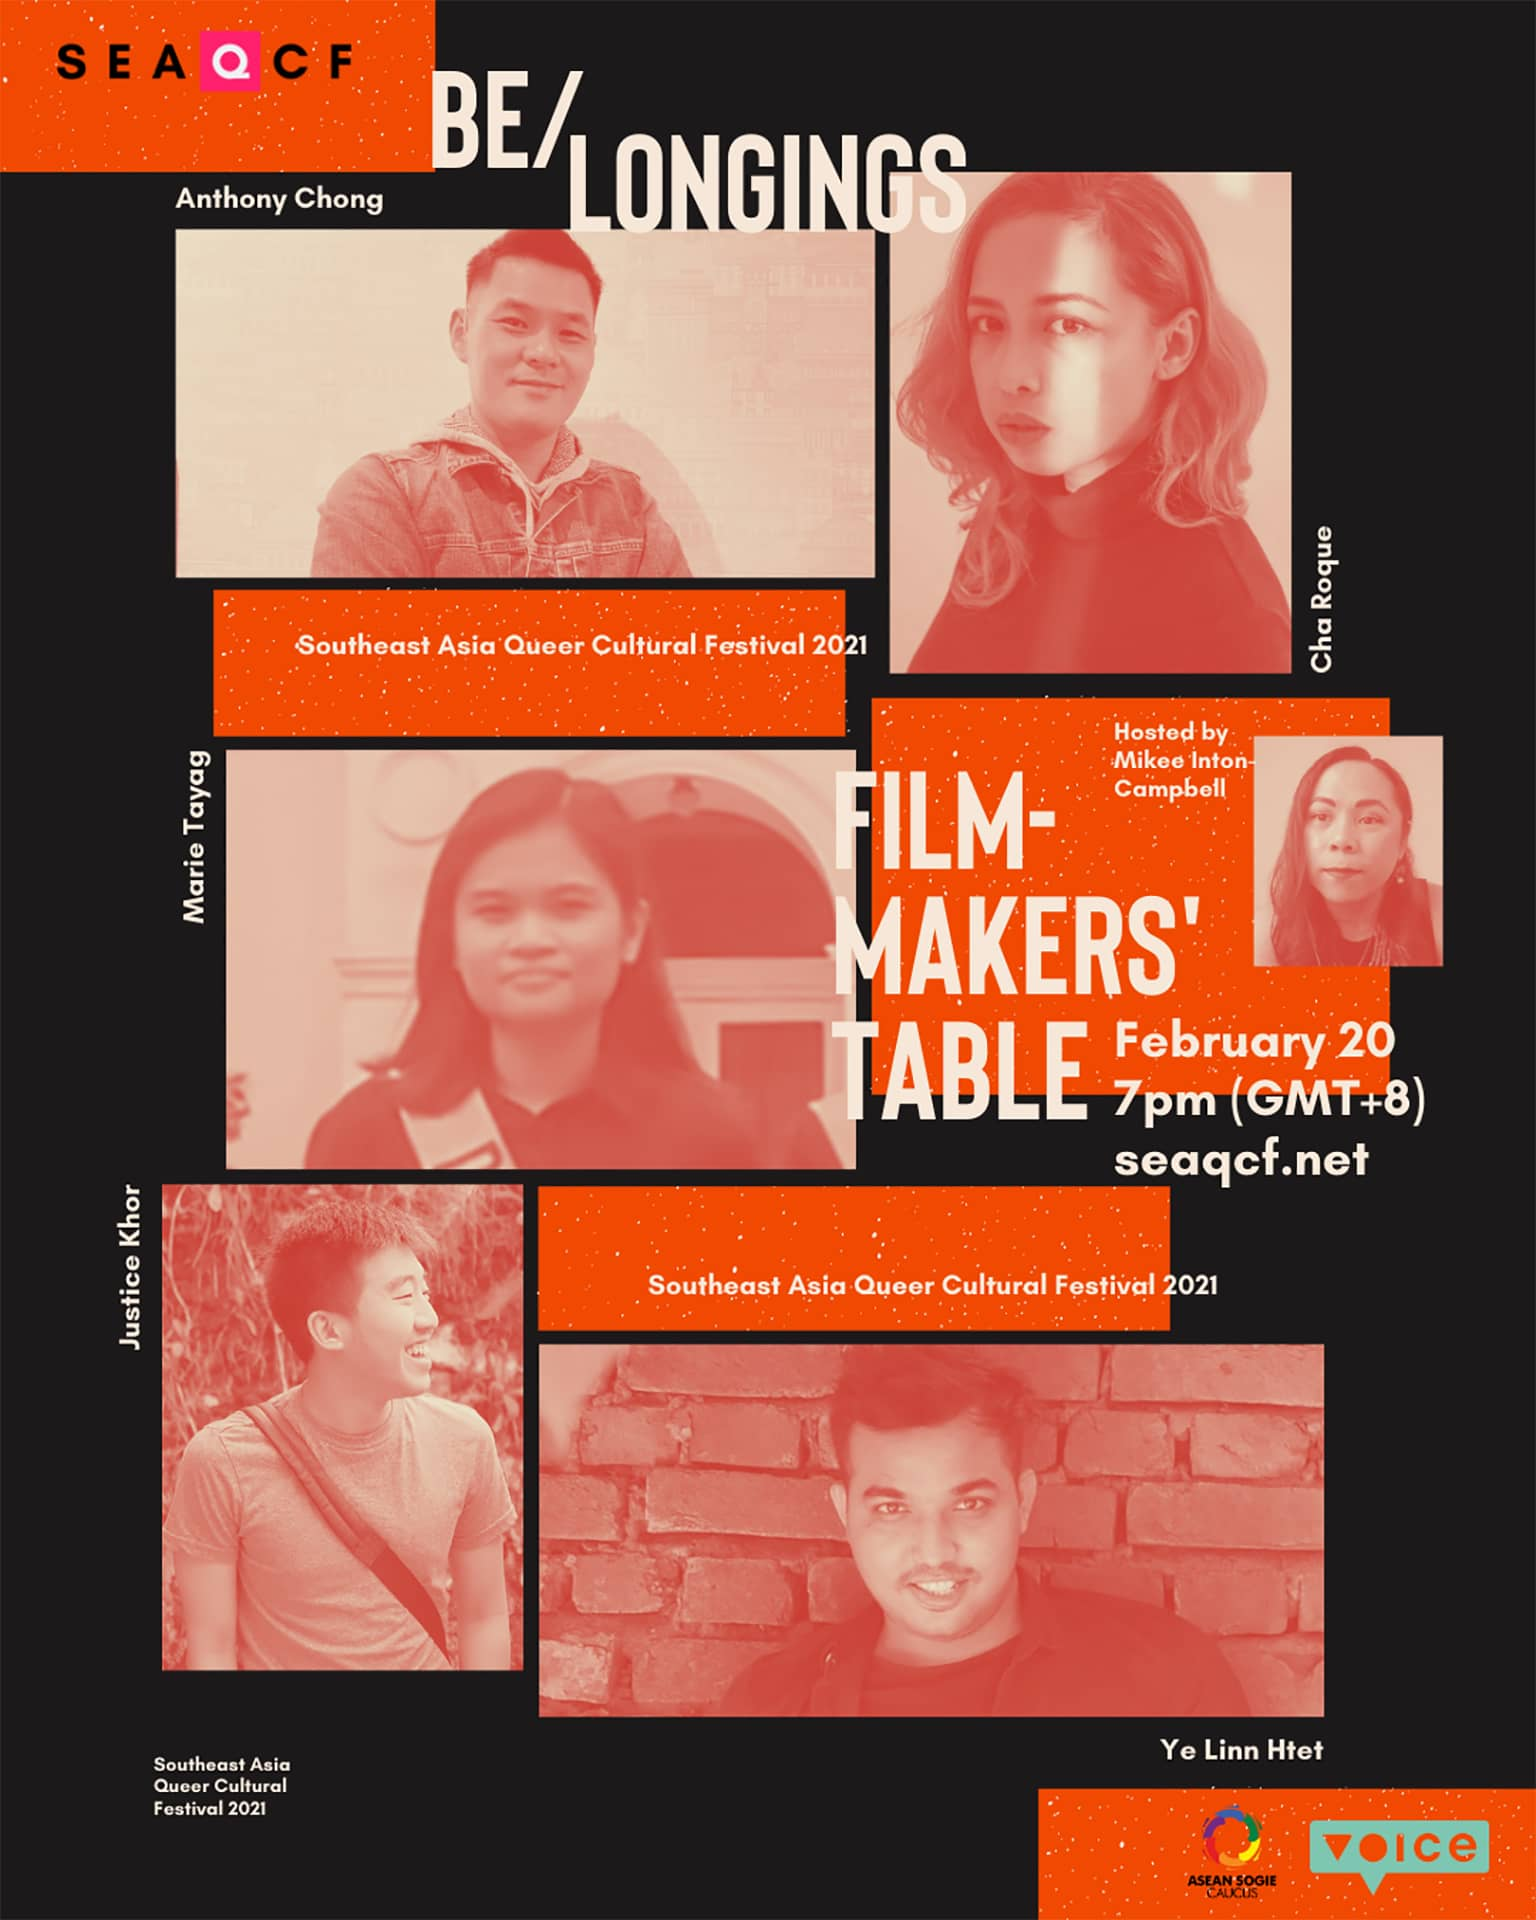 Filmmaker's Table, photo collage of Cha Roque, Anthony Chong, Marie Tayag, Justice Khor, Ye Linn Htet and Mikee Inton-Campbell